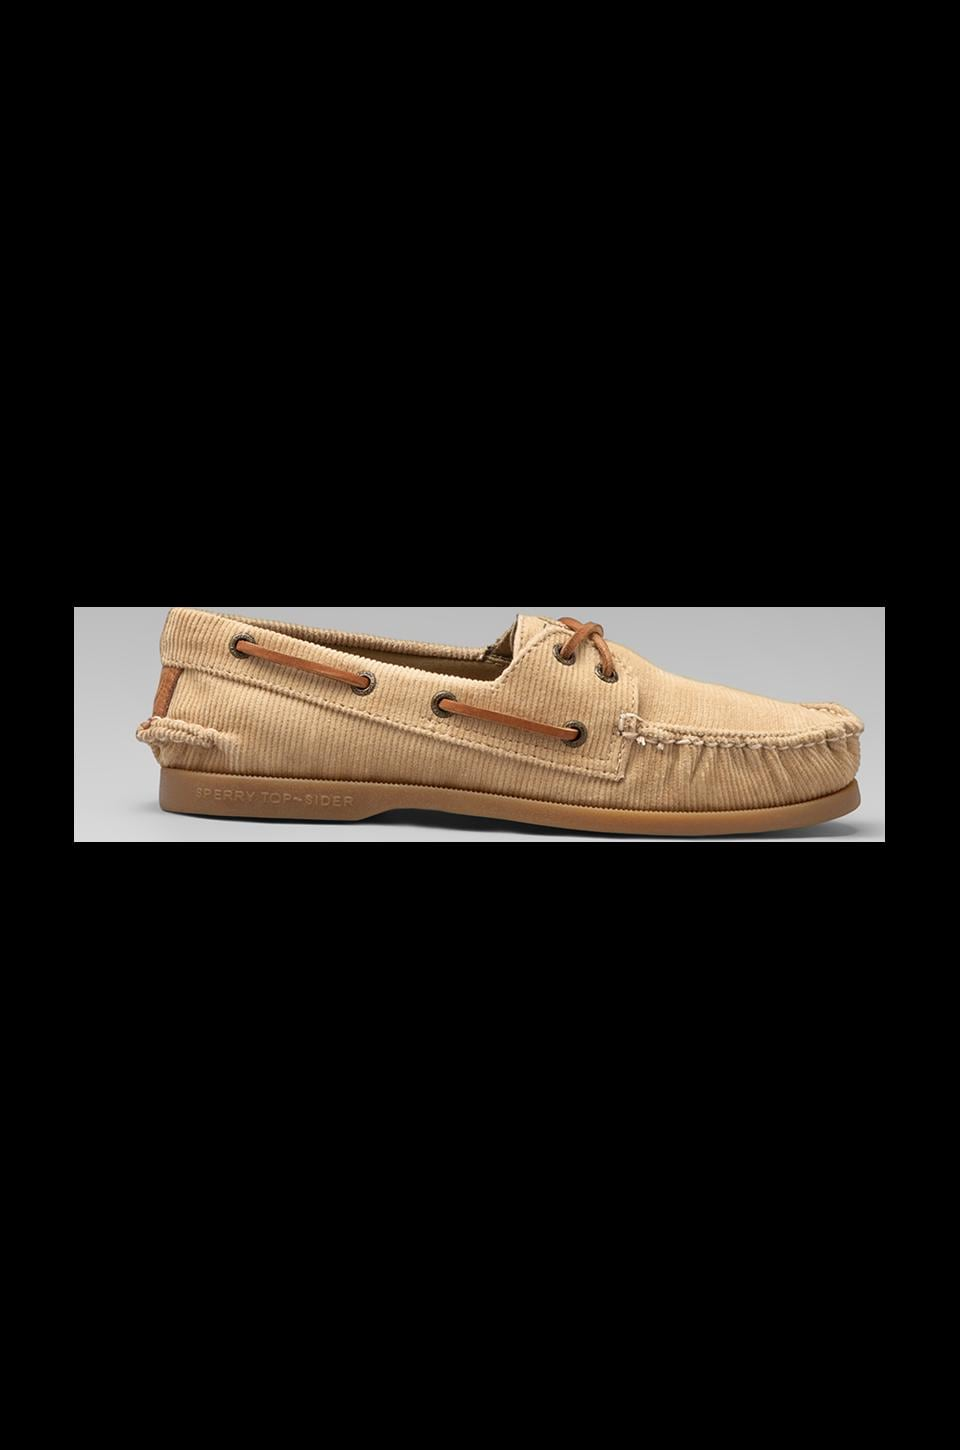 Sperry Top-Sider A/O 2-Eye Corduroy in Khaki